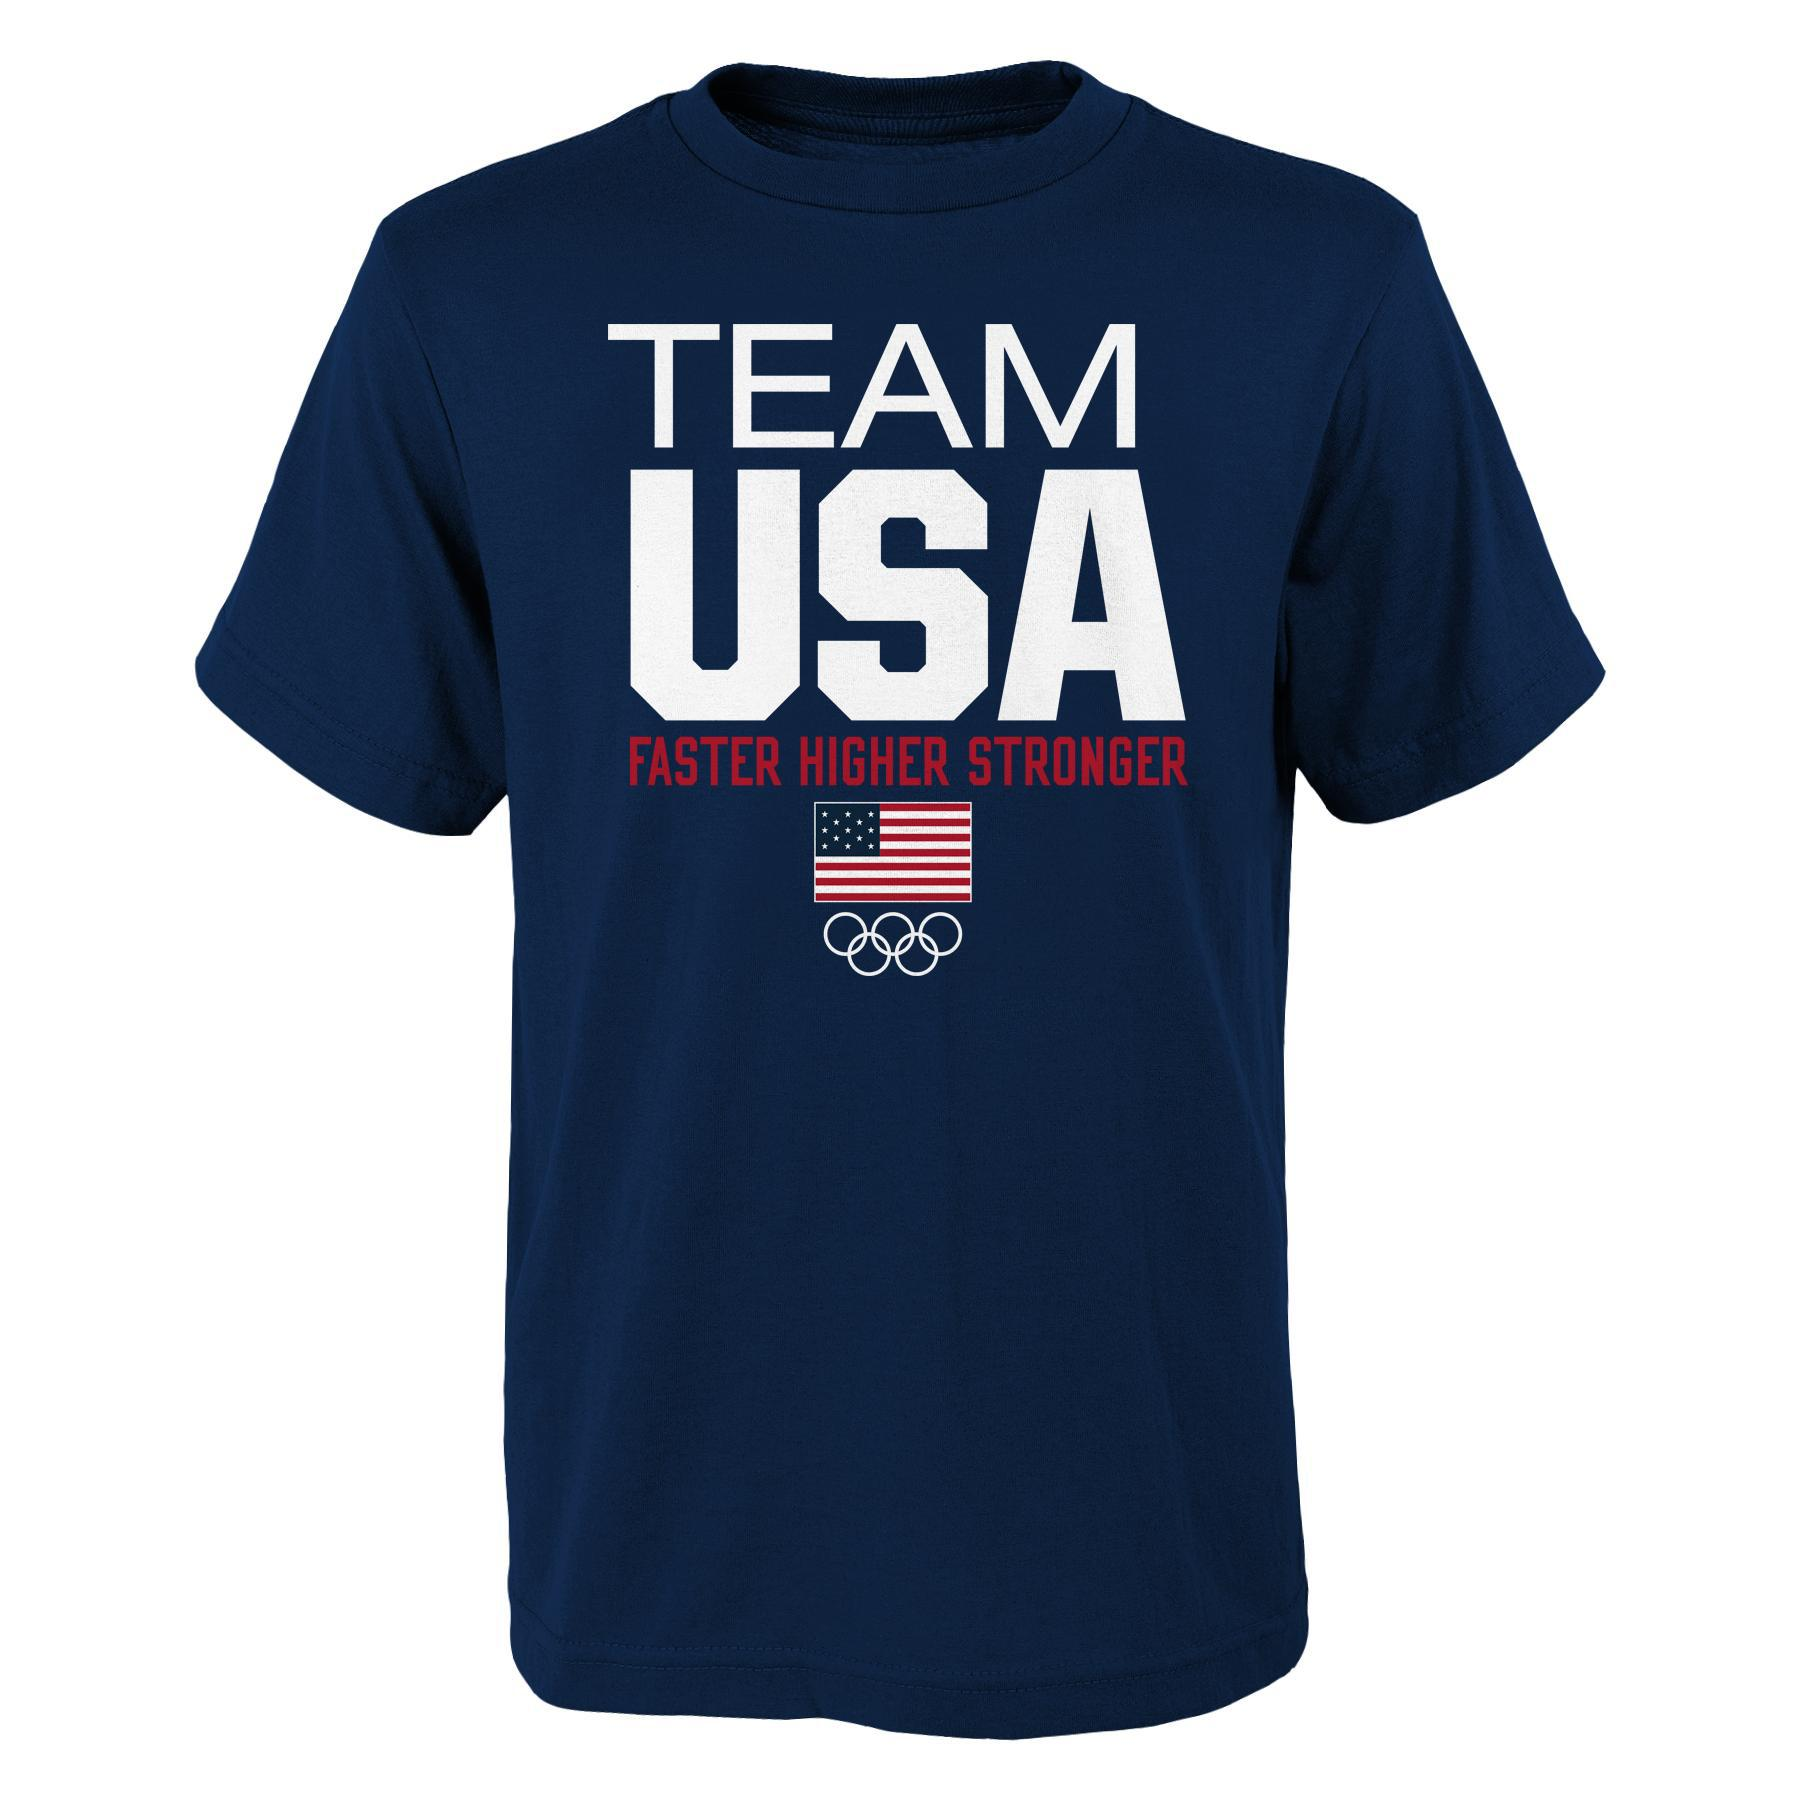 Men's Olympic Games Graphic T-Shirt - Team USA PartNumber: 046VA89571312P MfgPartNumber: 60FLK-US